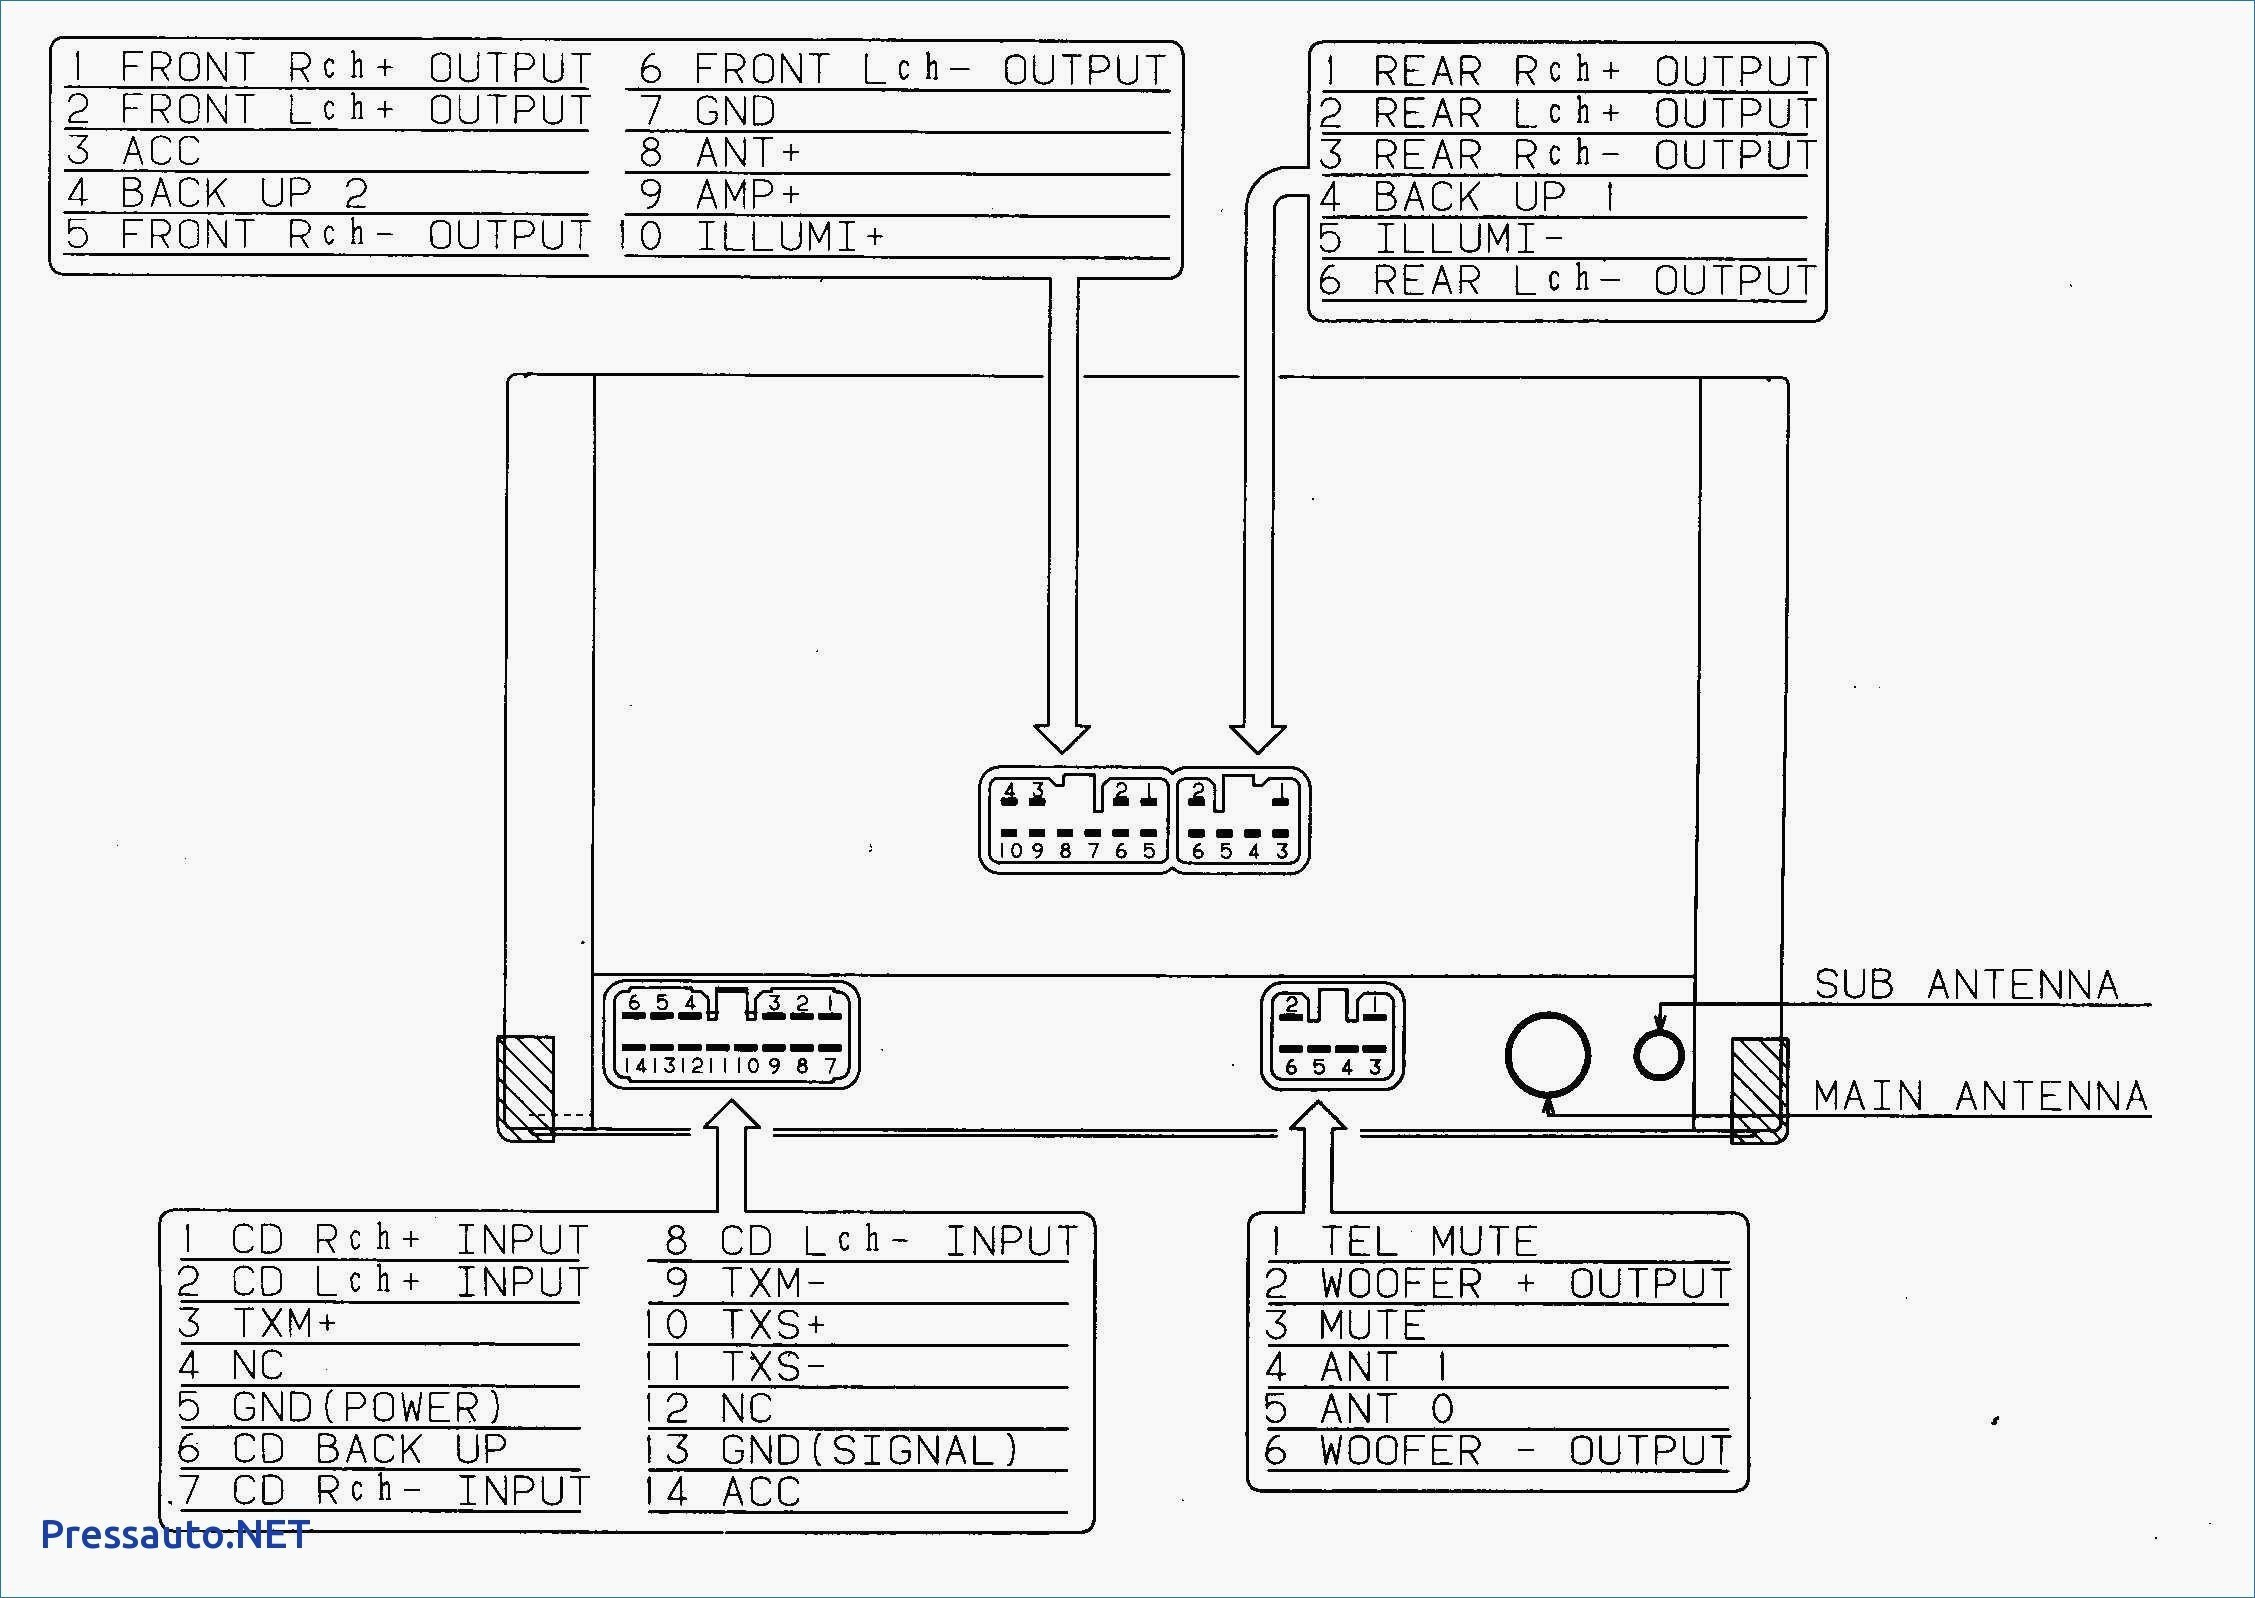 Wiring Diagram Pioneer Deh 150Mp | Manual E-Books - Pioneer Deh-150Mp Wiring Diagram